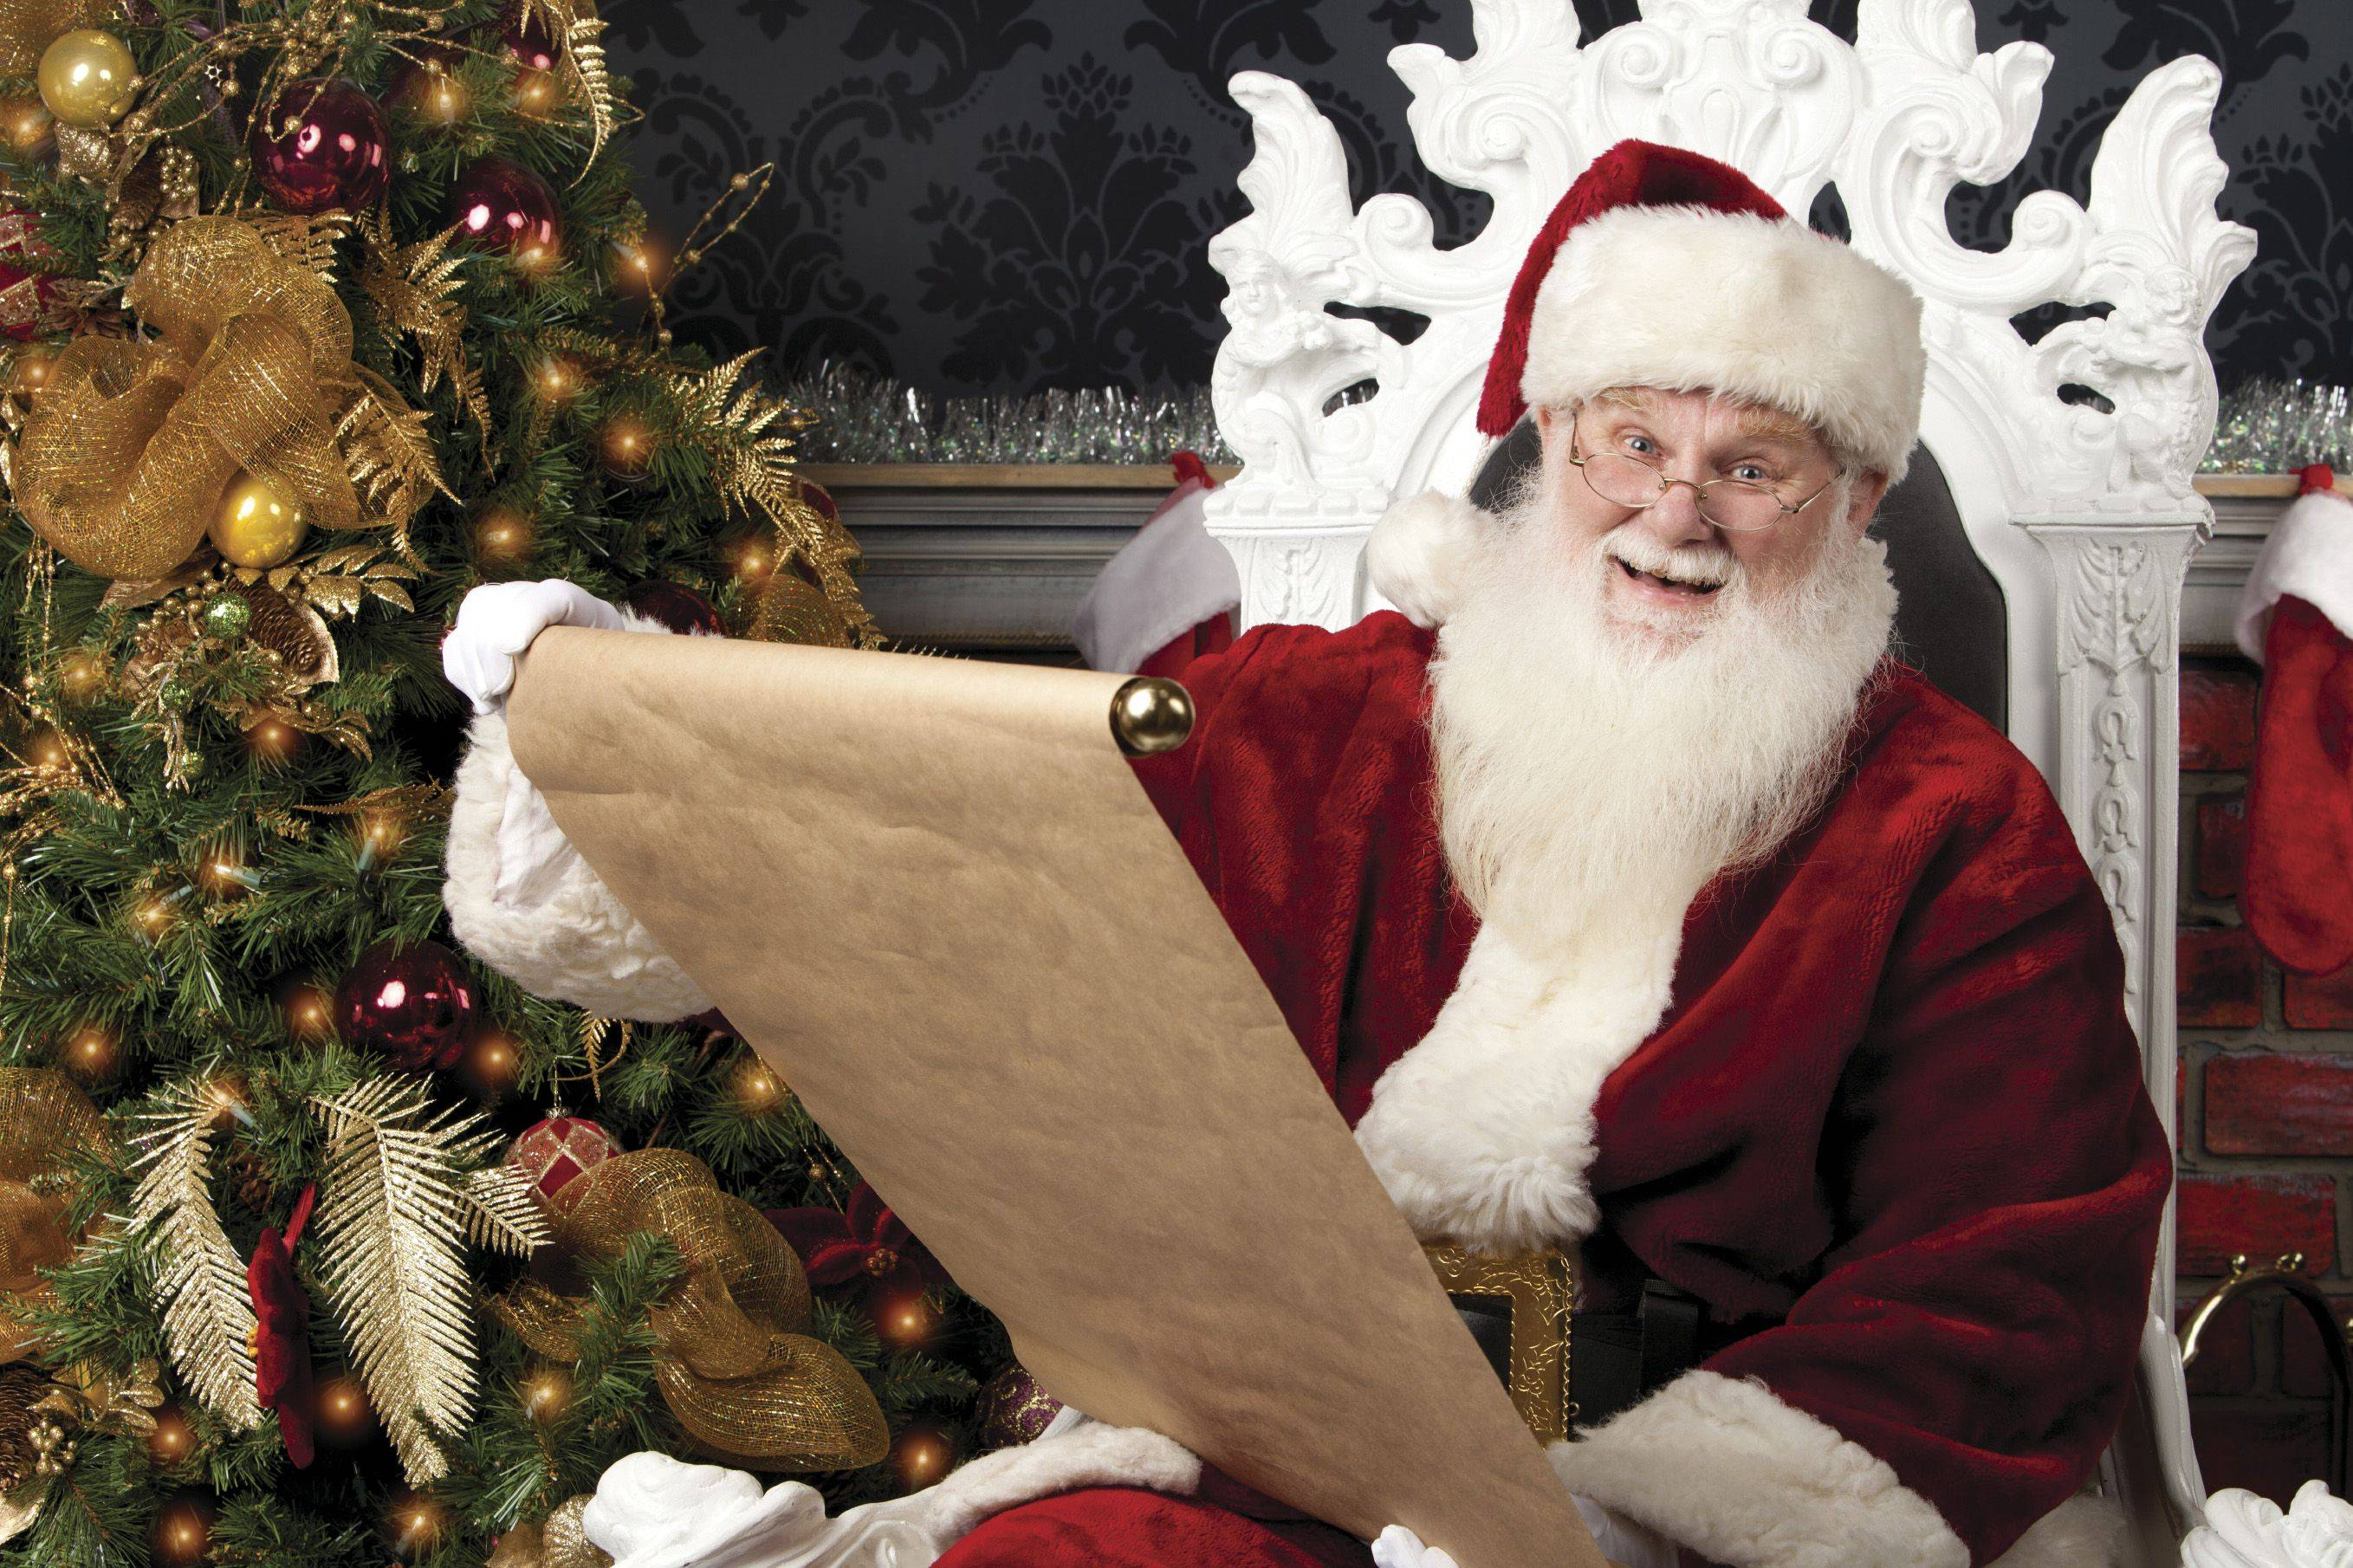 Santa will appear Sundays, Dec. 11-18, at Geneva Commons; and from 11 a.m. to 1 p.m. Saturday, Dec. 10, at Algonquin Commons.